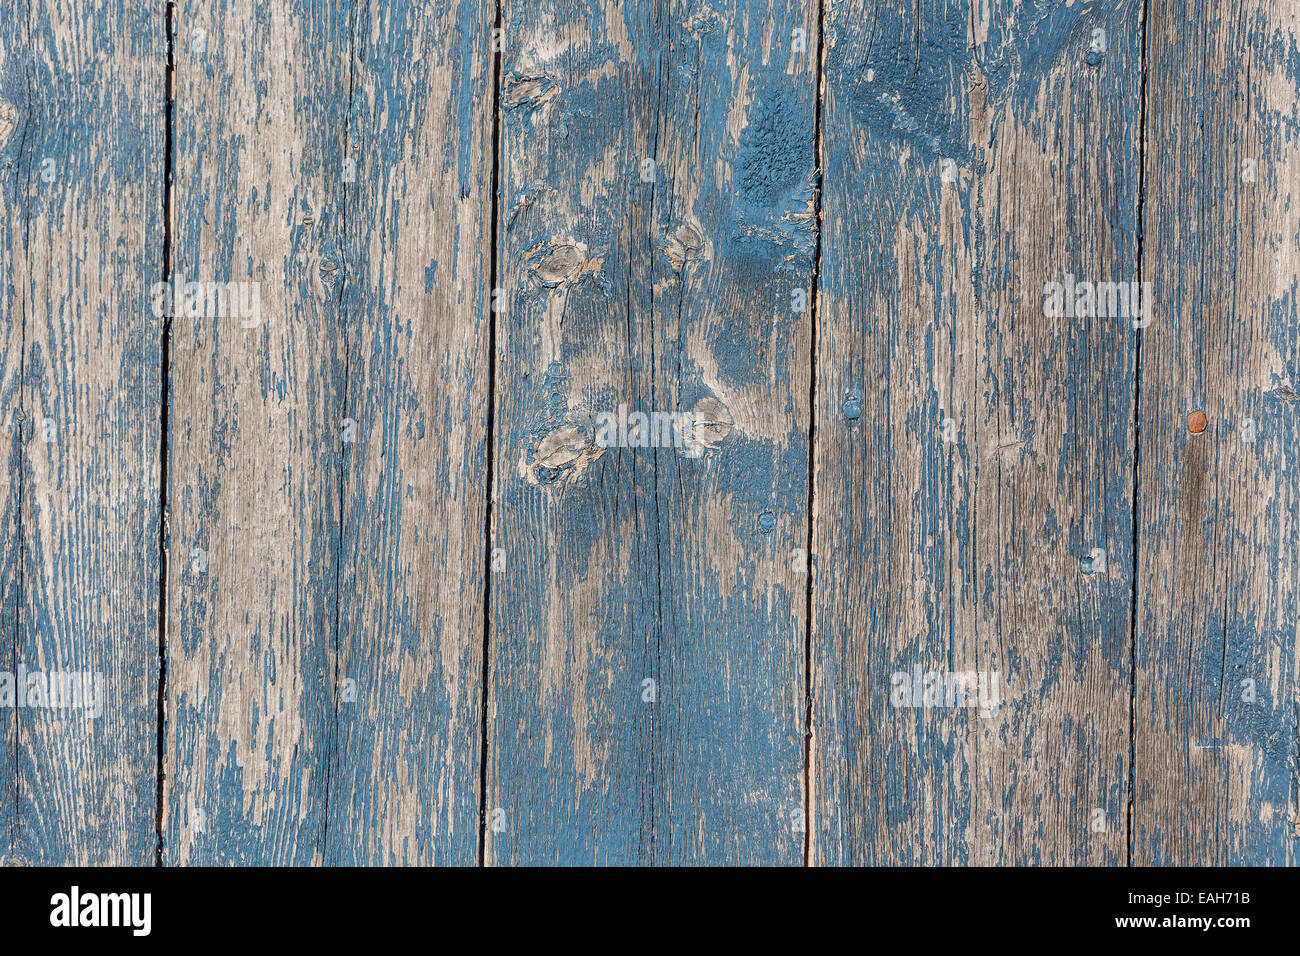 Old Wooden Barn Board With Distressed Blue Paint Stock